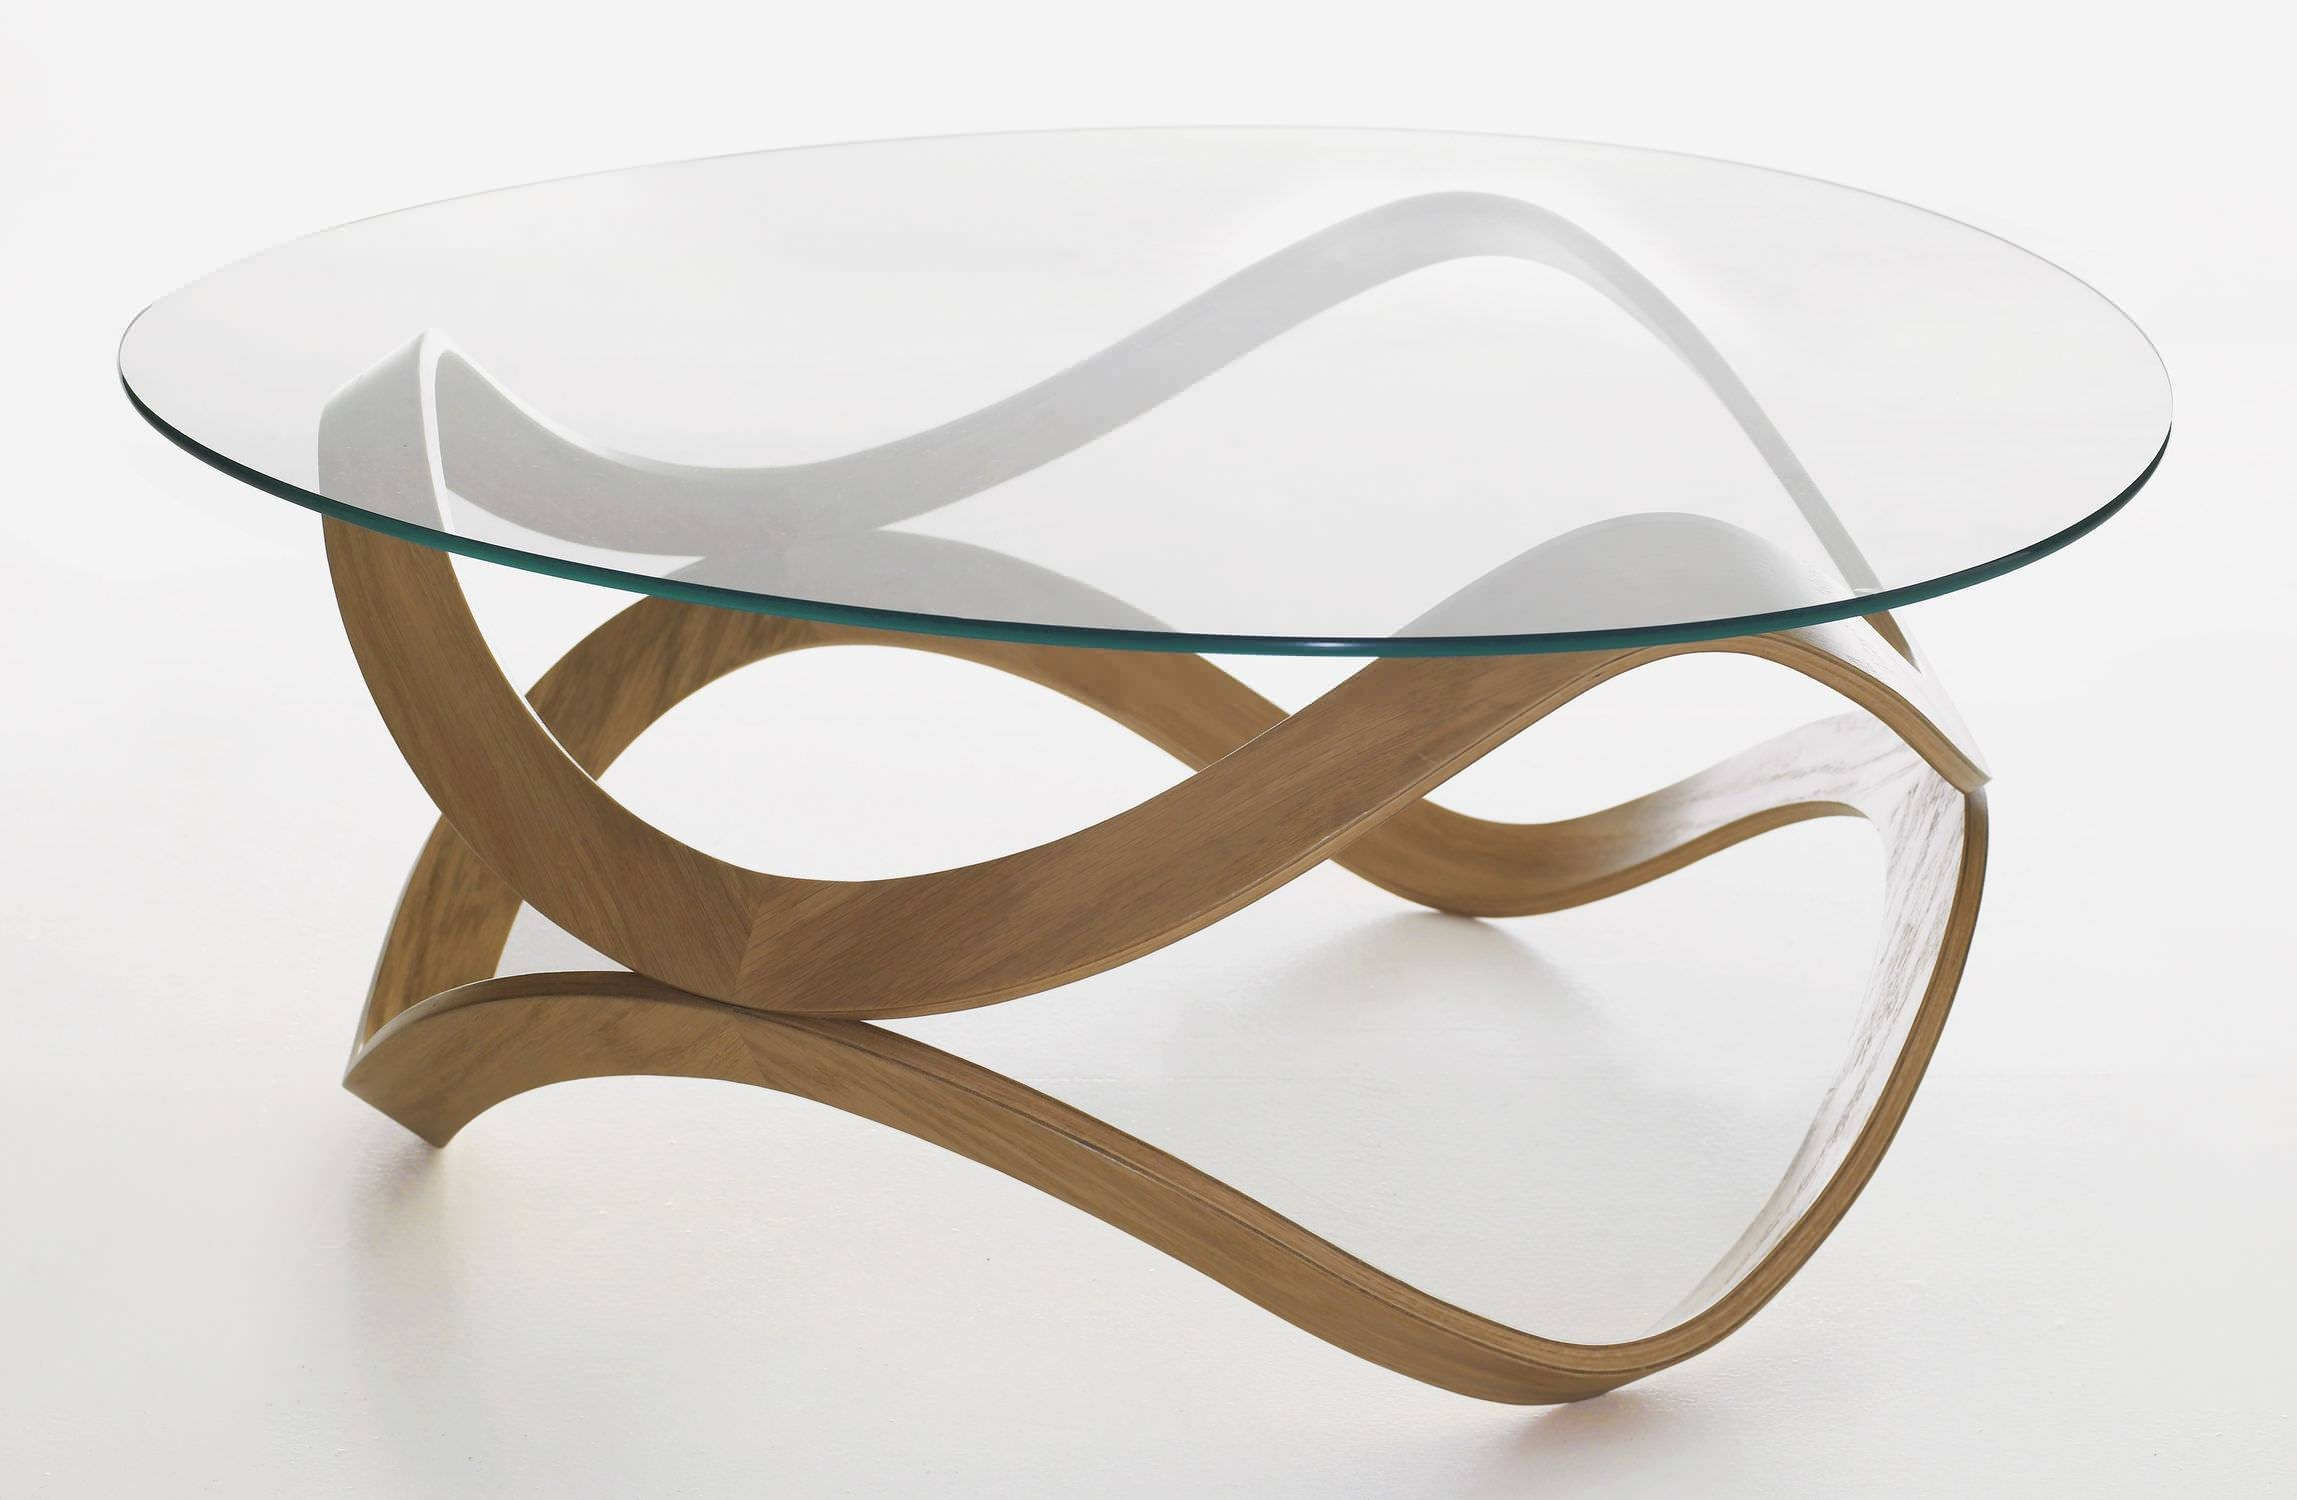 Contemporary Coffee Table / Glass / Oak / Ash - Newtond.sunaga with regard to Oak And Glass Coffee Table (Image 6 of 15)